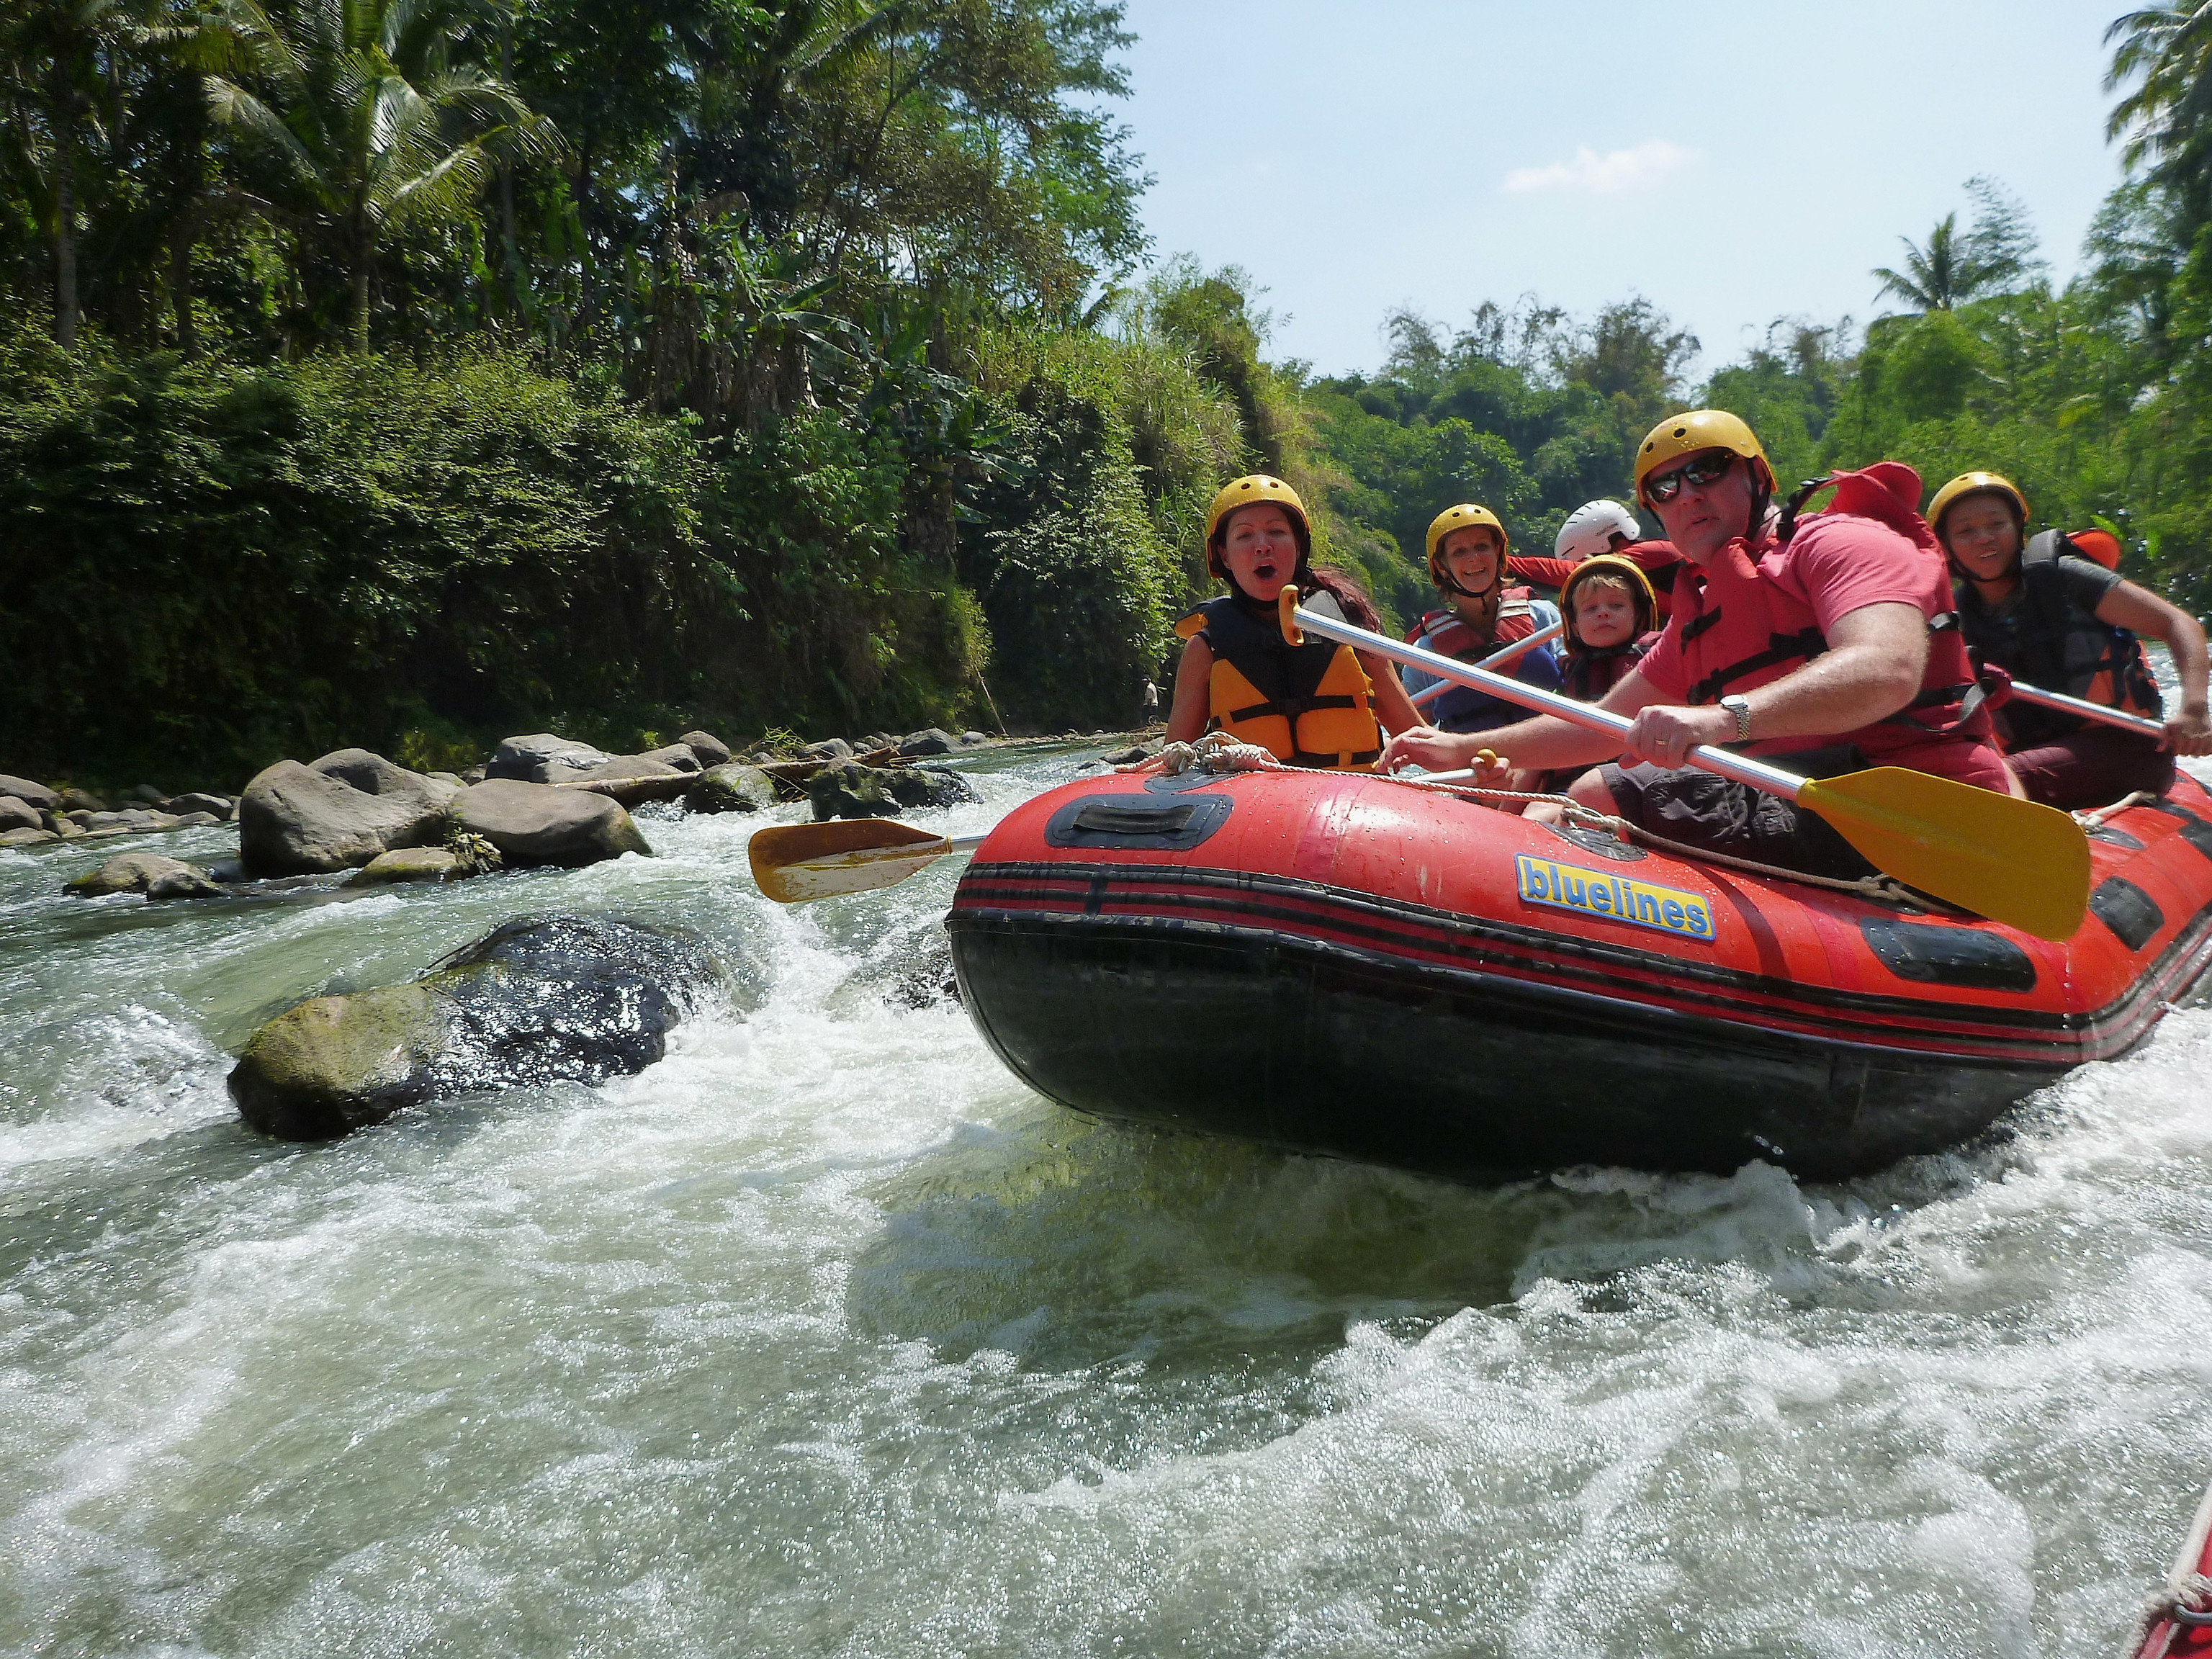 tree water sky rafting transport sports water sport tubing watercraft River riding rapid Raft leisure recreation outdoor recreation boating Boat wave